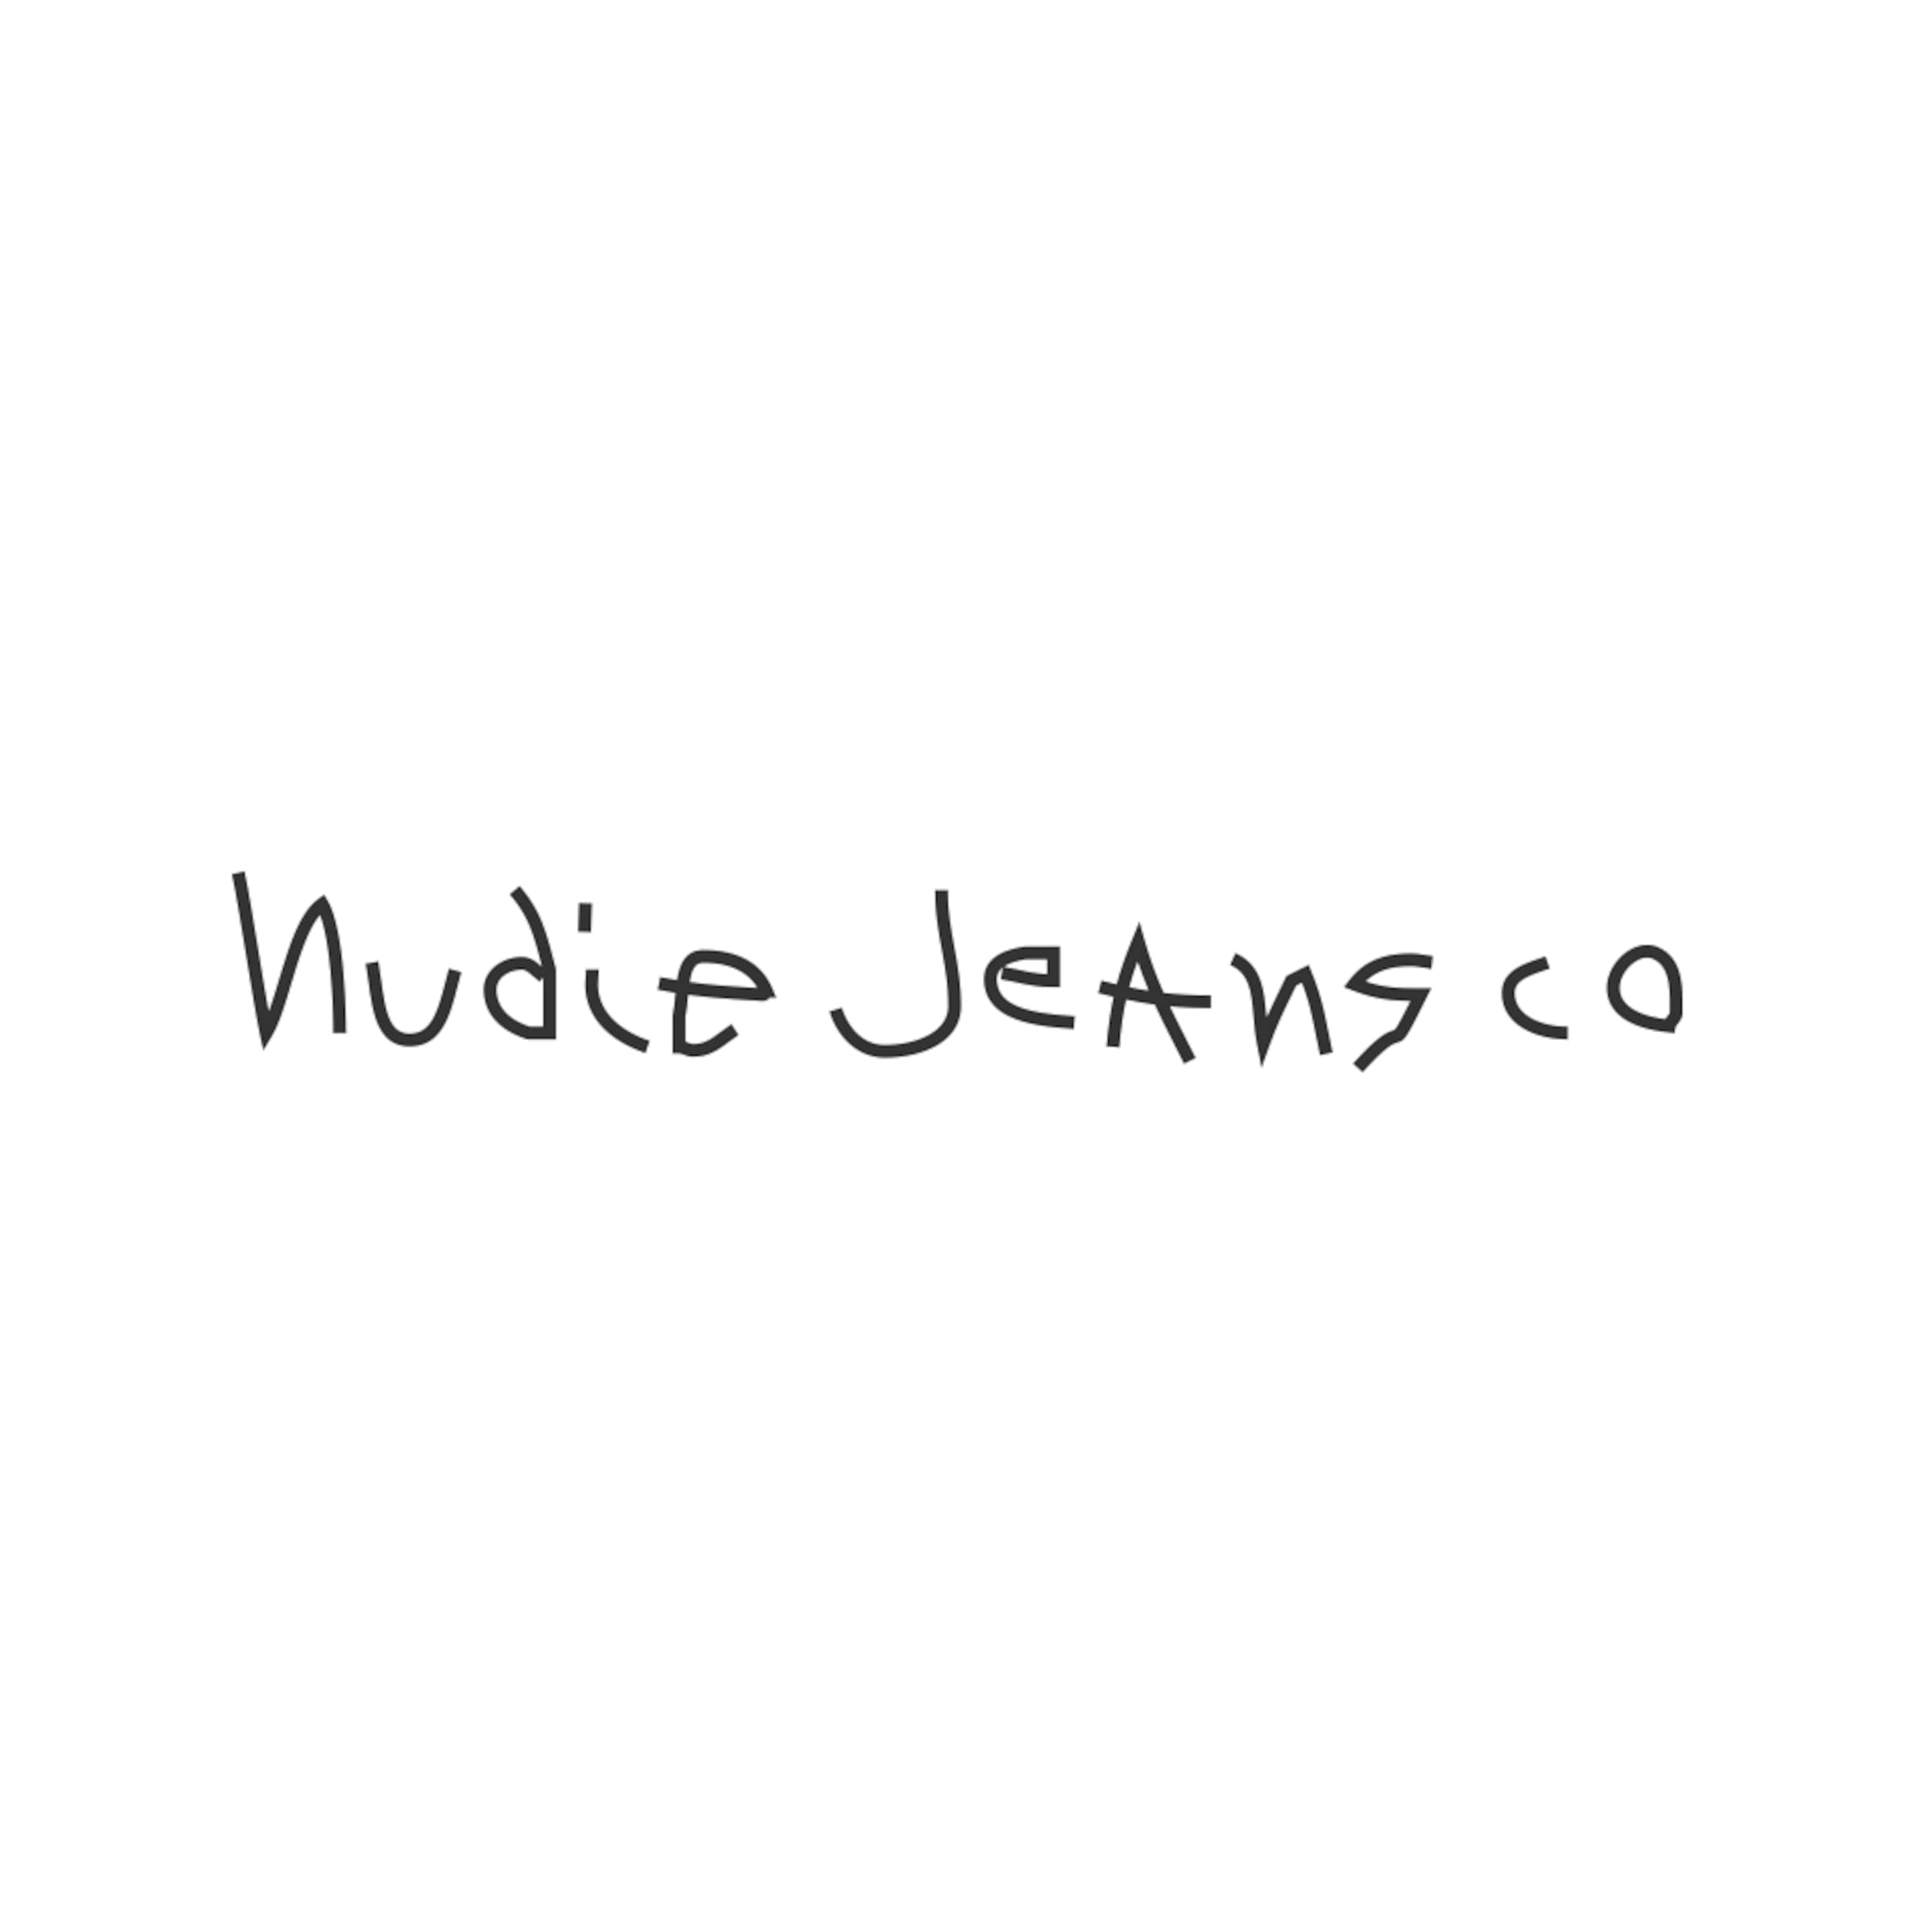 Nudie Jeans Co